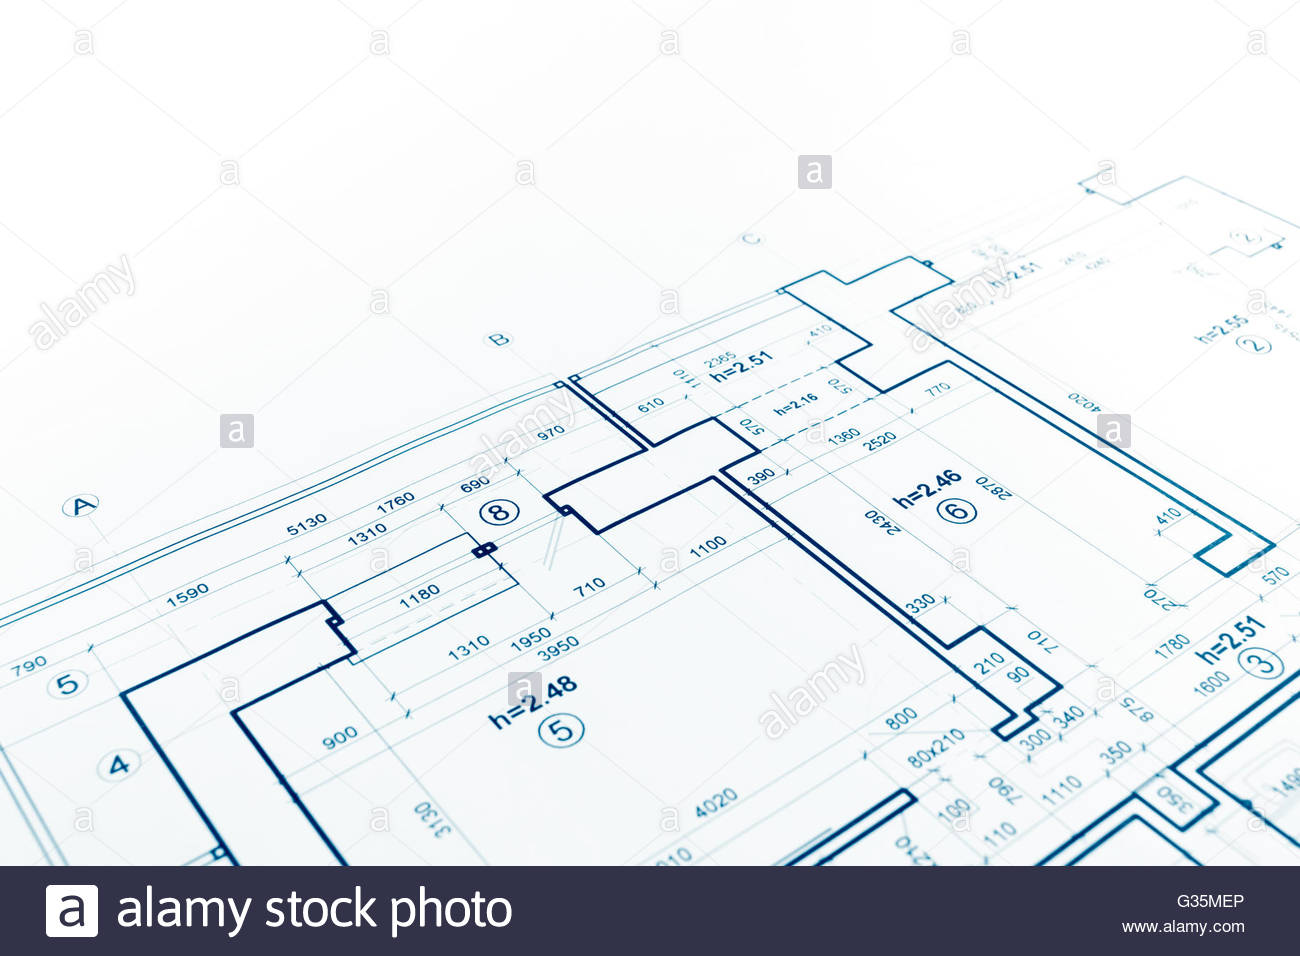 Construction drawing at getdrawings free for personal use 1300x956 blueprint floor plan technical drawing construction background malvernweather Choice Image